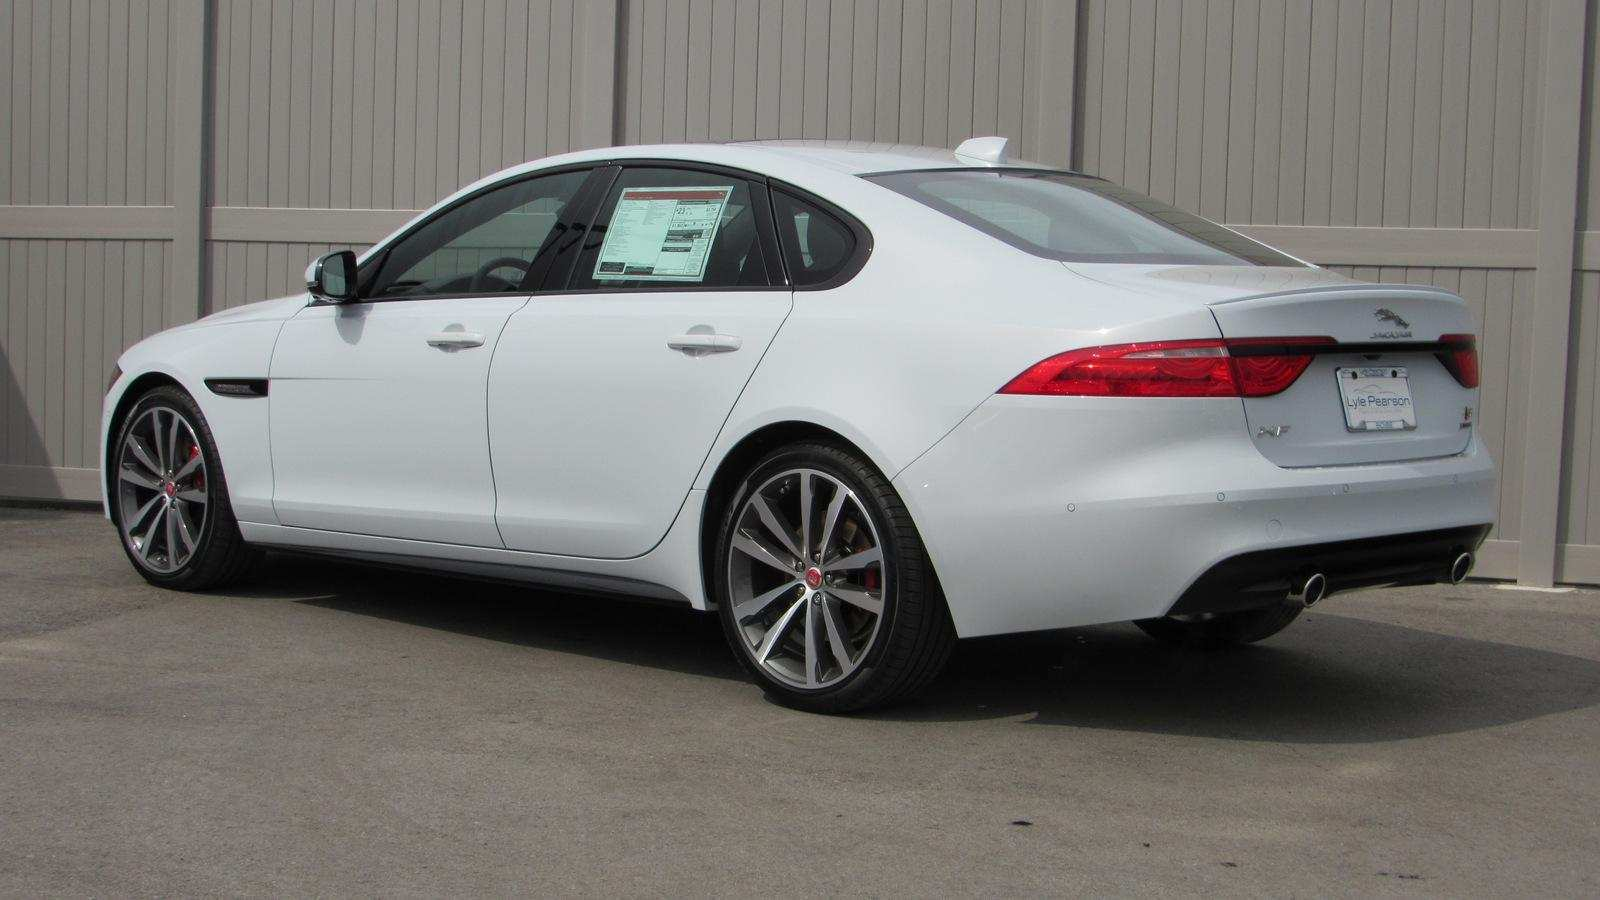 29 All New 2019 Jaguar XF Price And Review